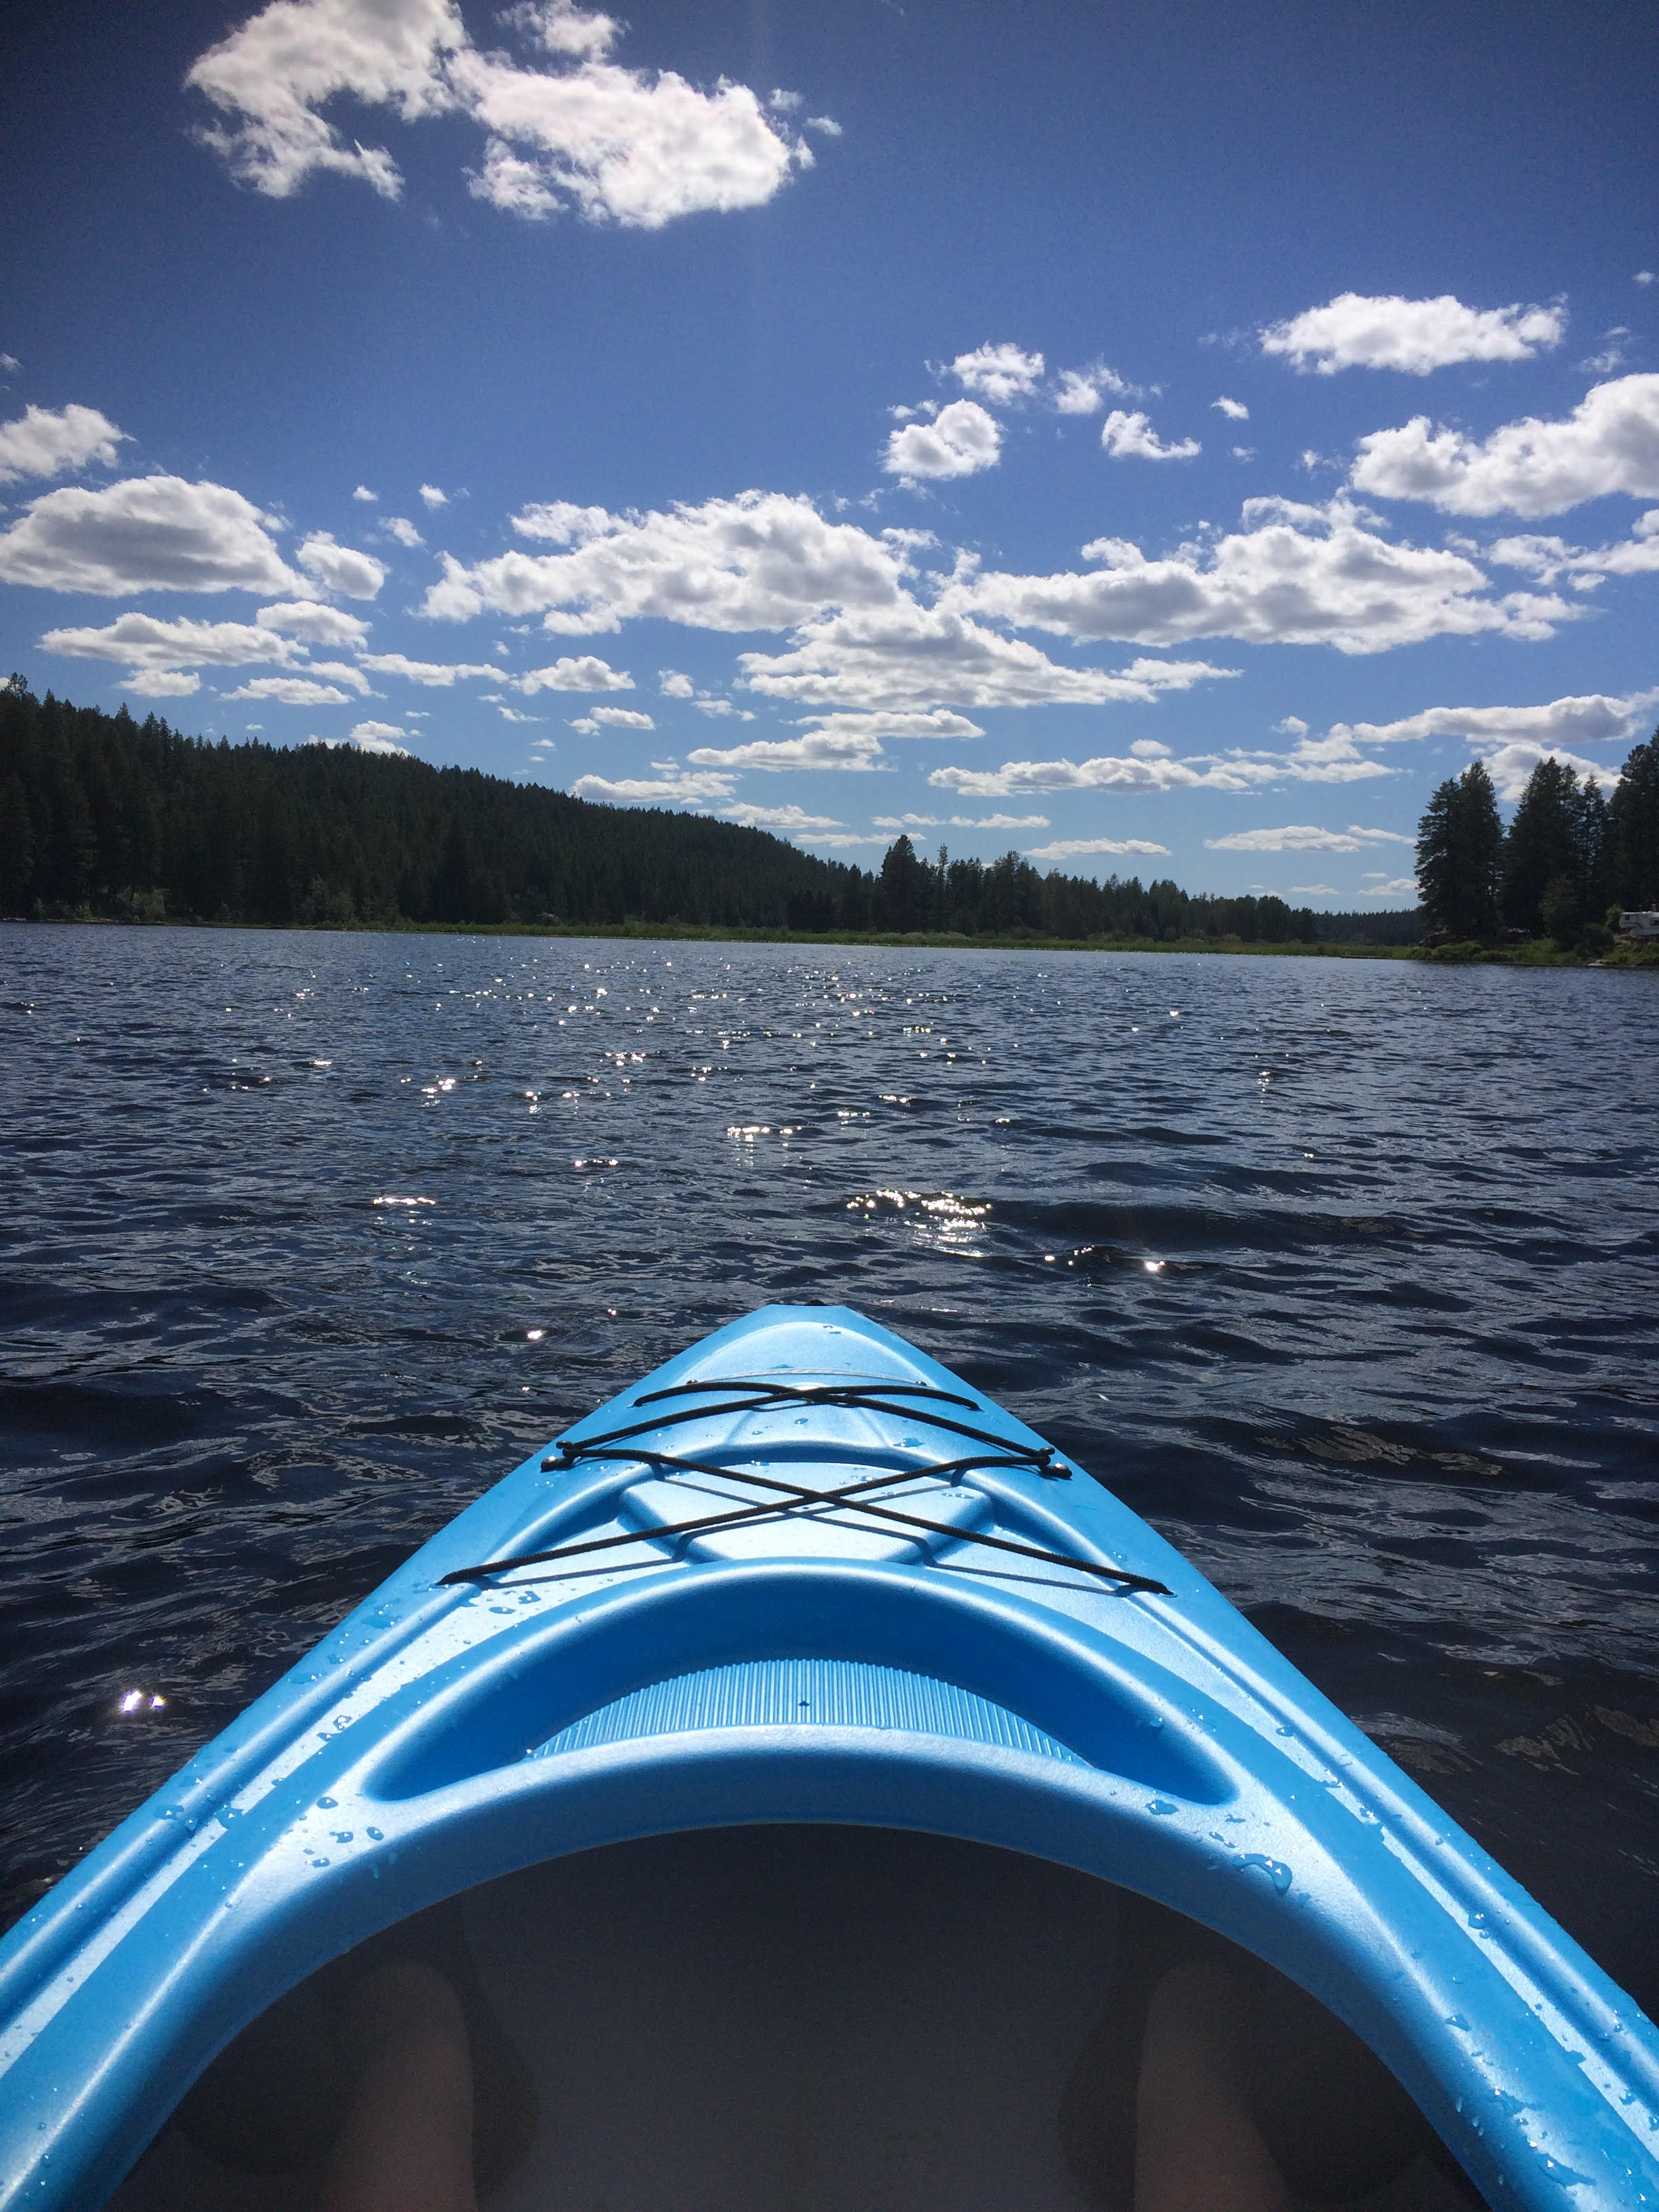 kayak on the lake.jpg